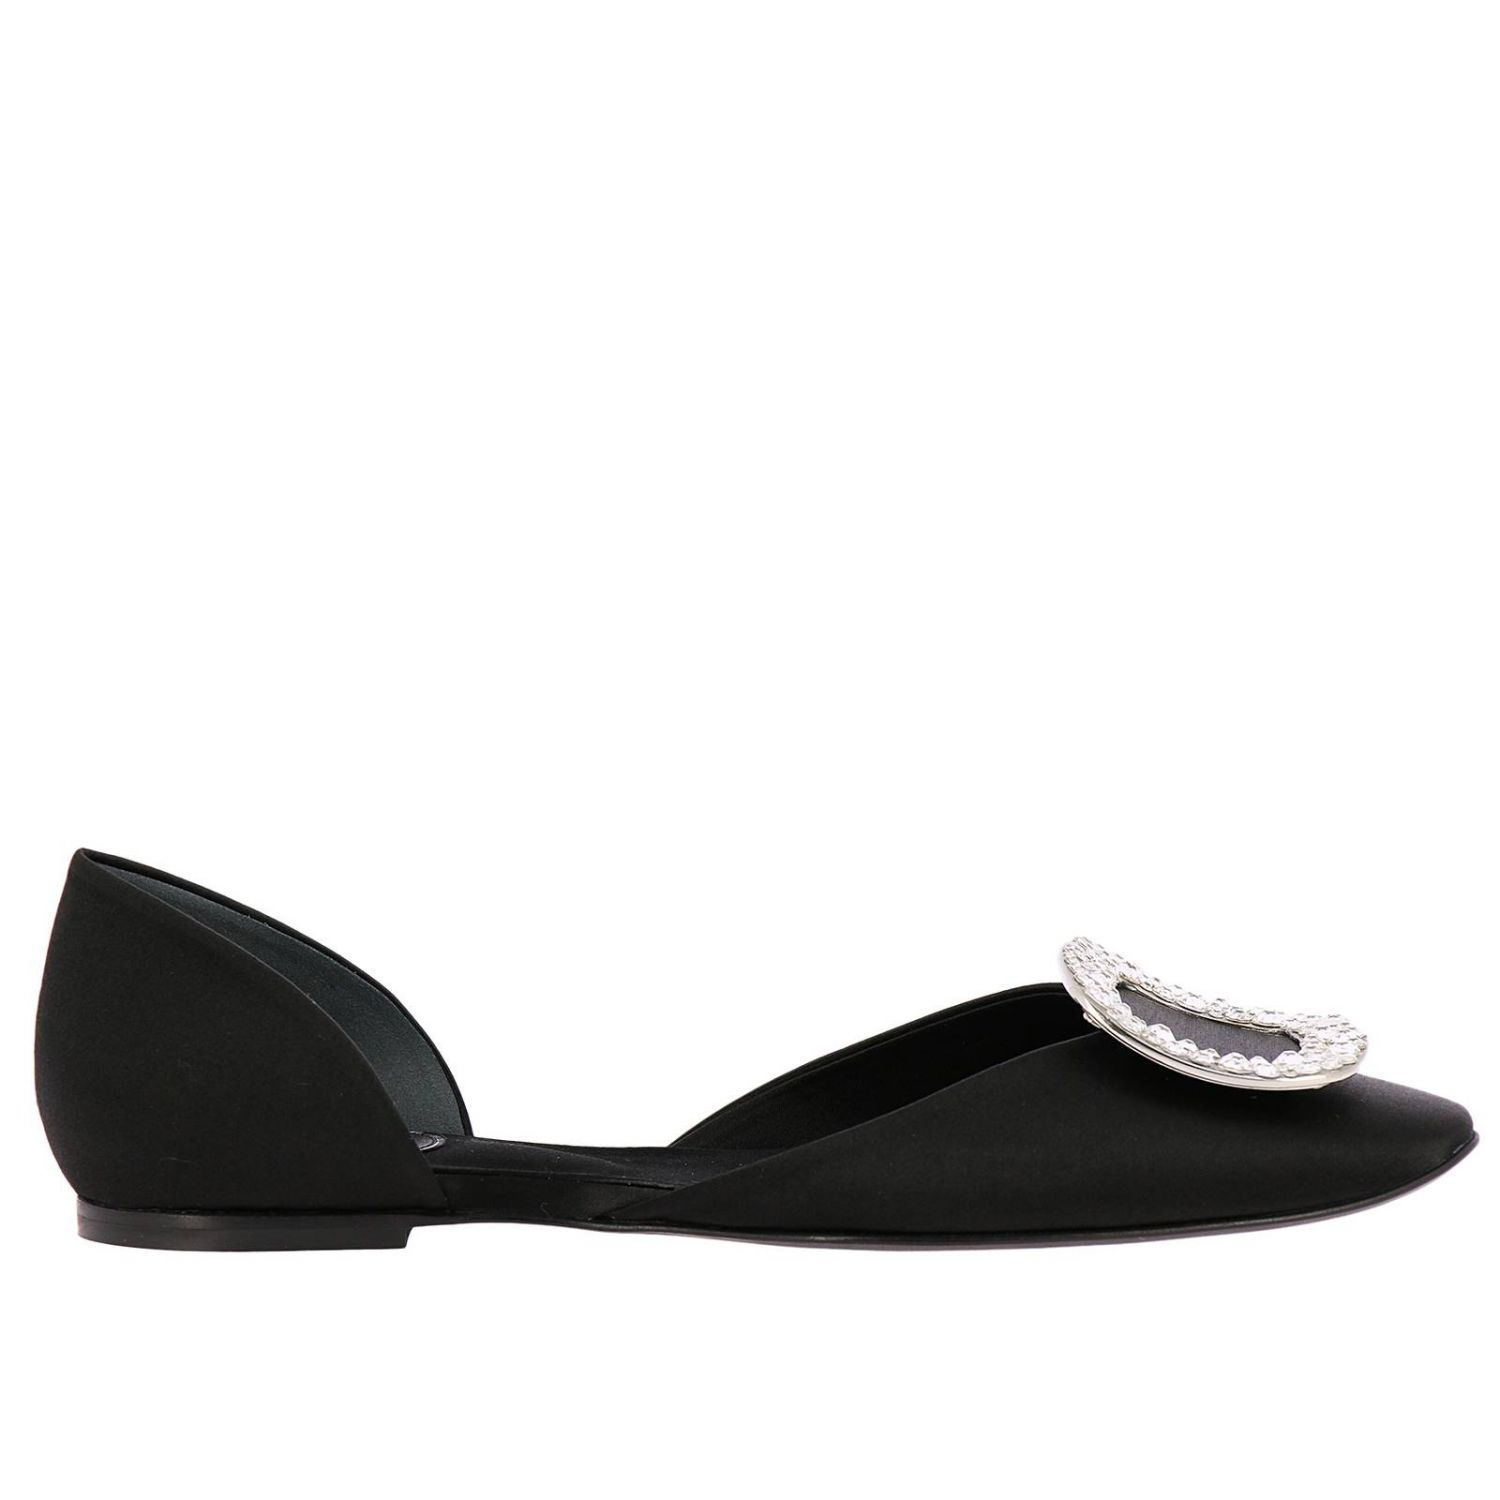 Chips ballet flats with rhinestone buckle in satin black 1